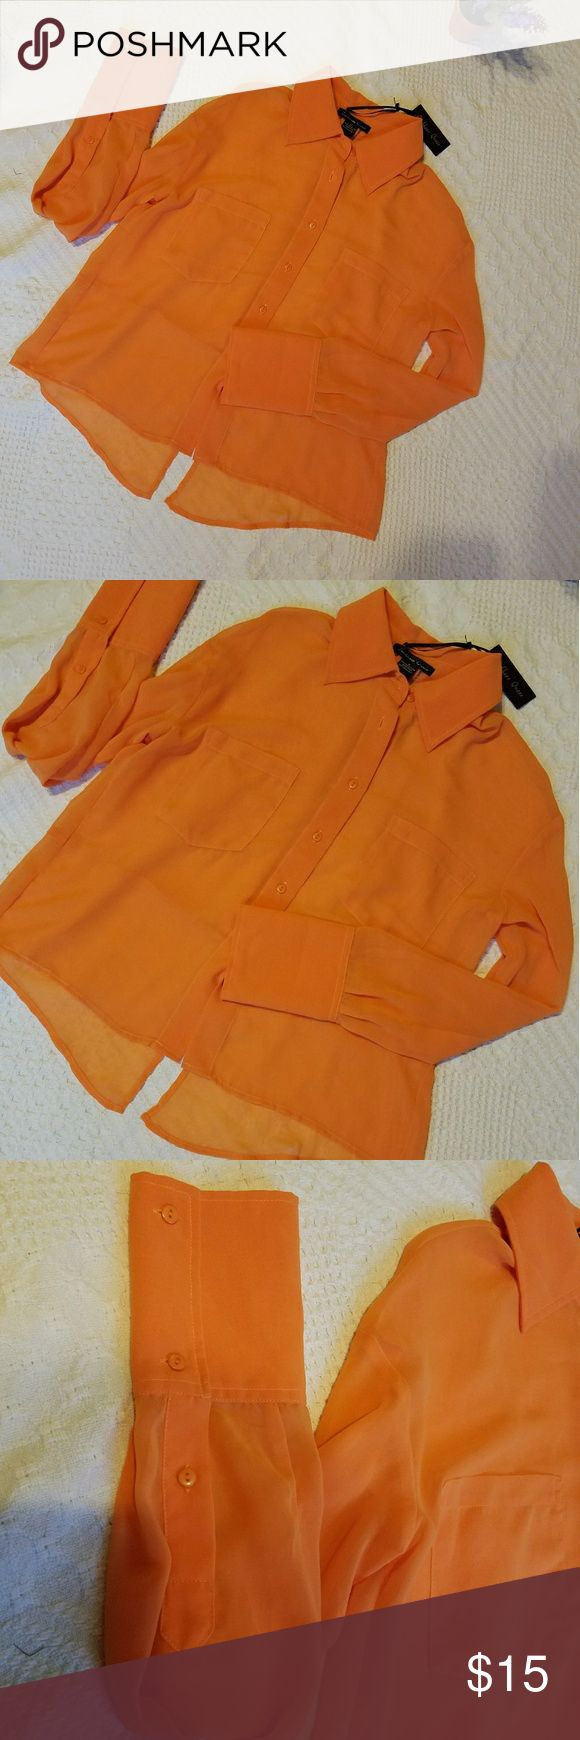 Caribbean Queen button down top This is an adorable Caribbean Queen button down top with slit in the back. Two front pockets and can roll up sleeves. Caribbean Queen Tops Button Down Shirts